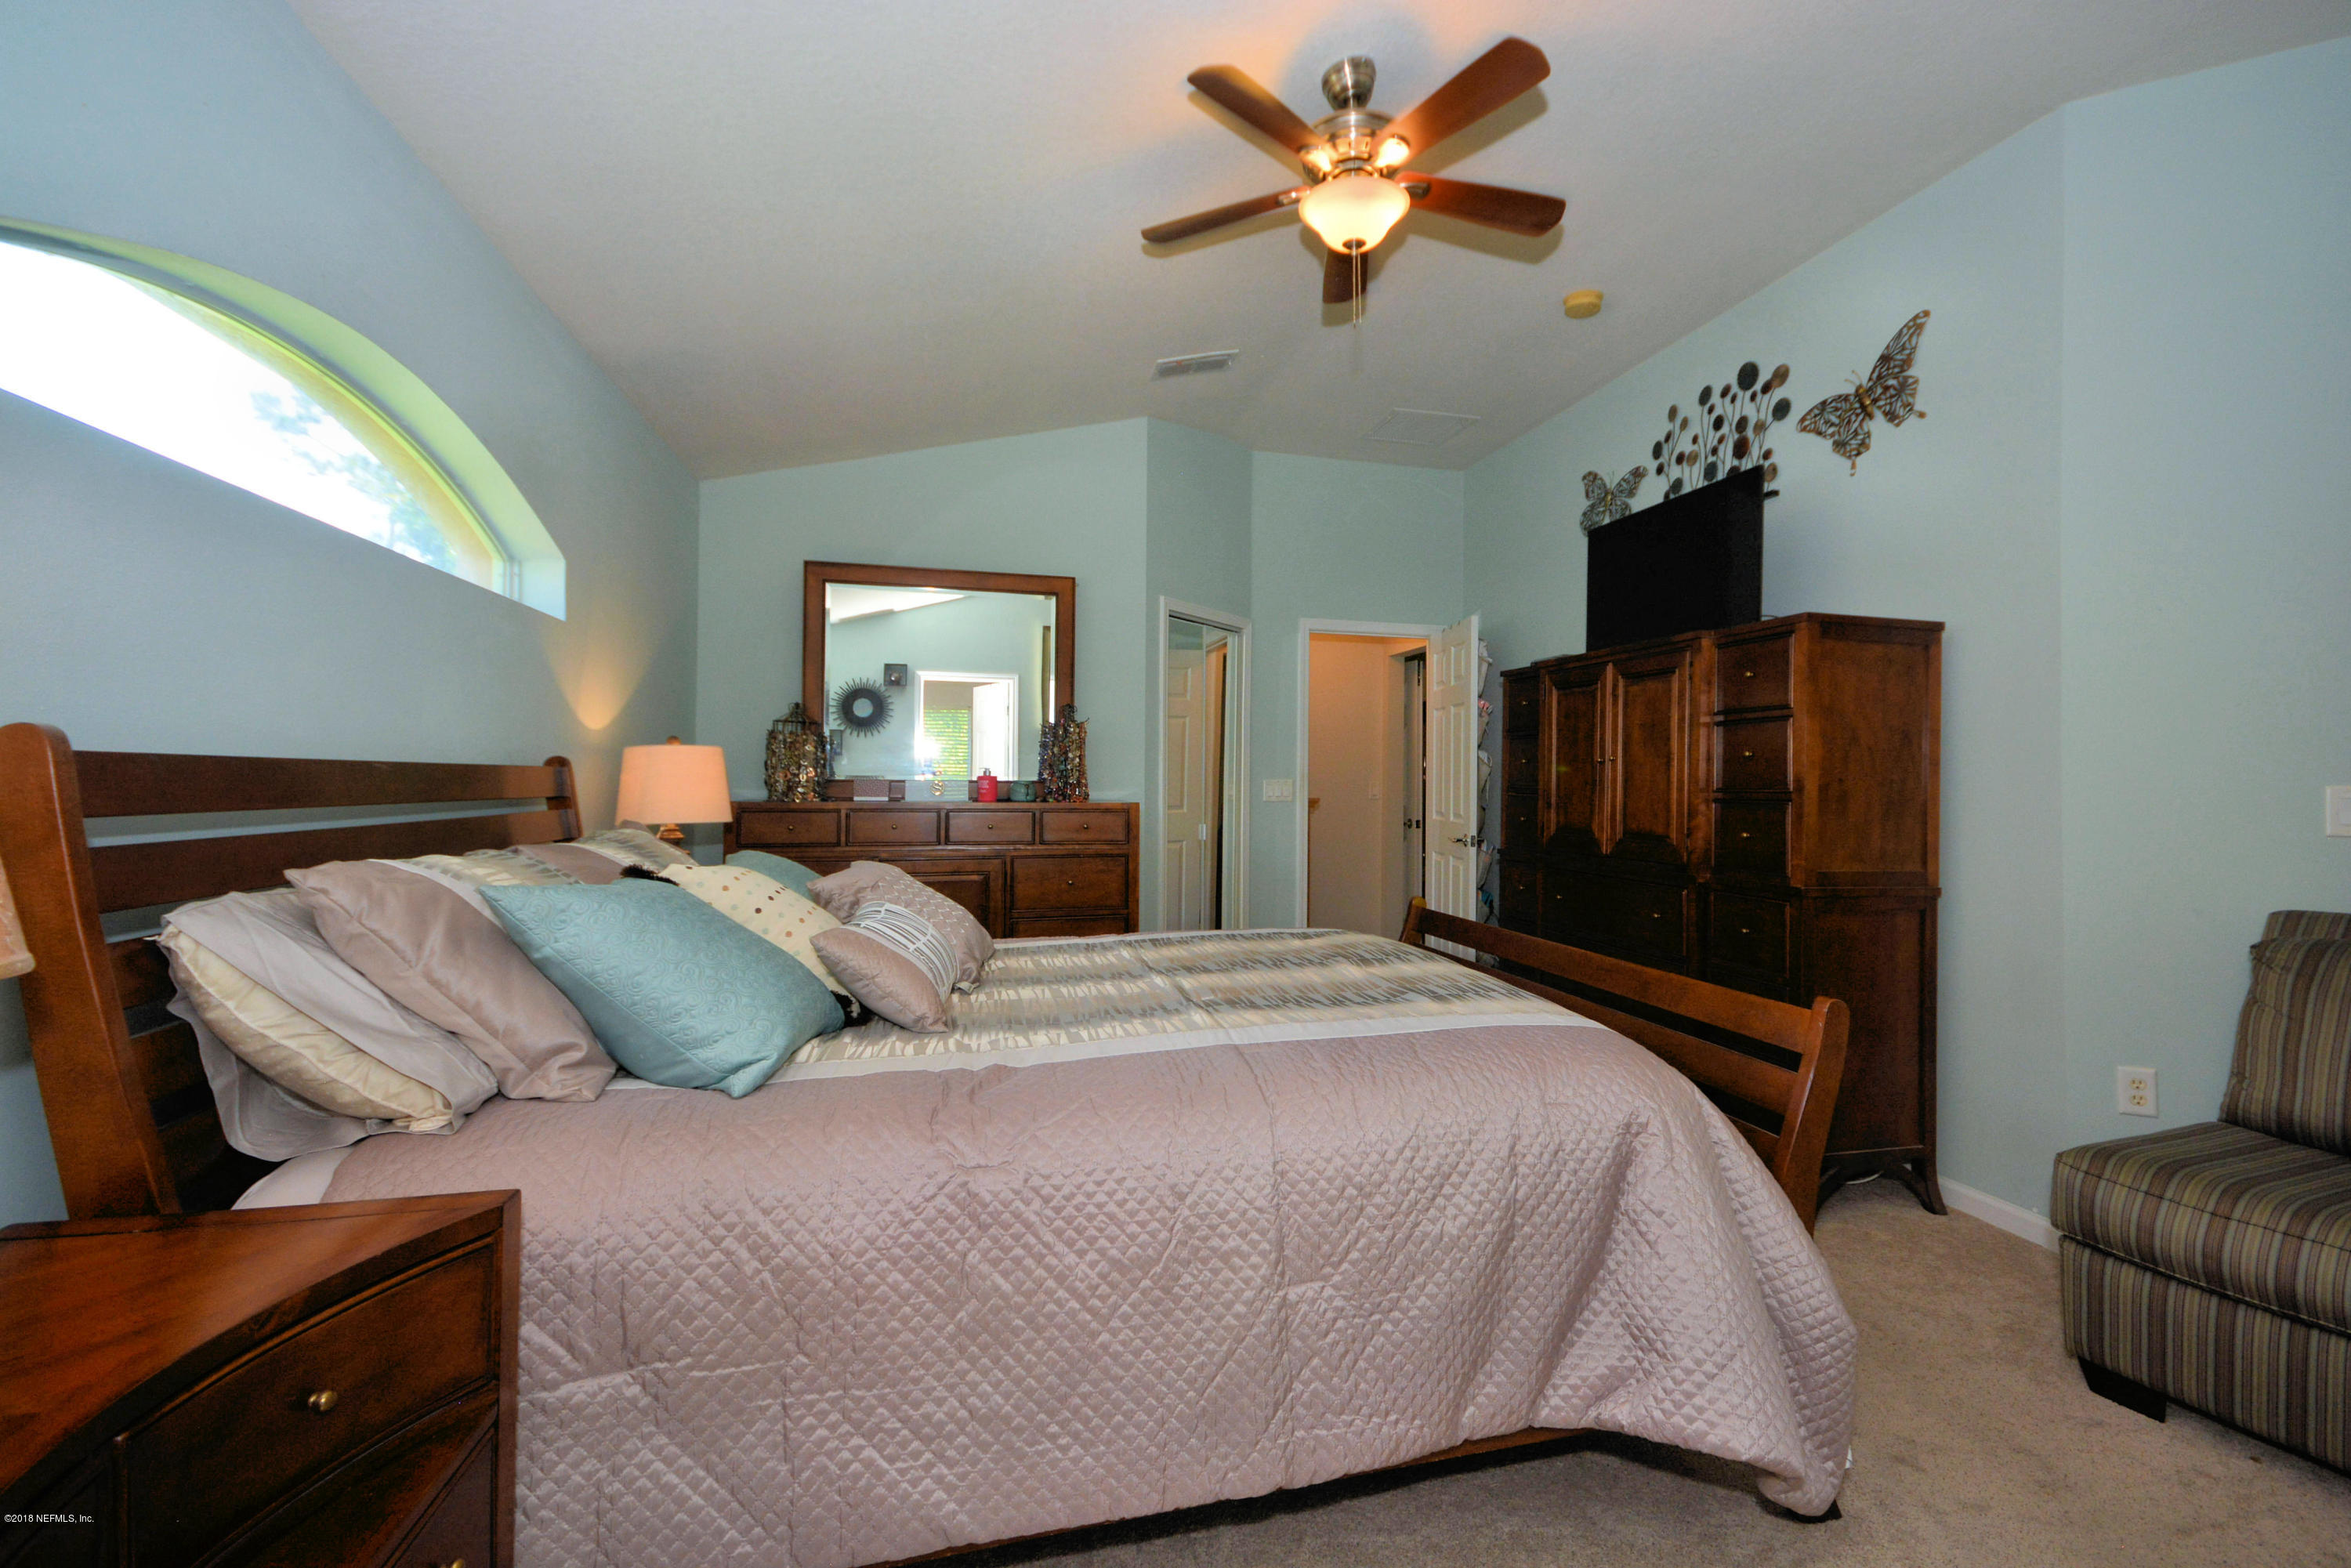 9205 SWEET BERRY, JACKSONVILLE, FLORIDA 32256, 2 Bedrooms Bedrooms, ,2 BathroomsBathrooms,Residential - single family,For sale,SWEET BERRY,951642